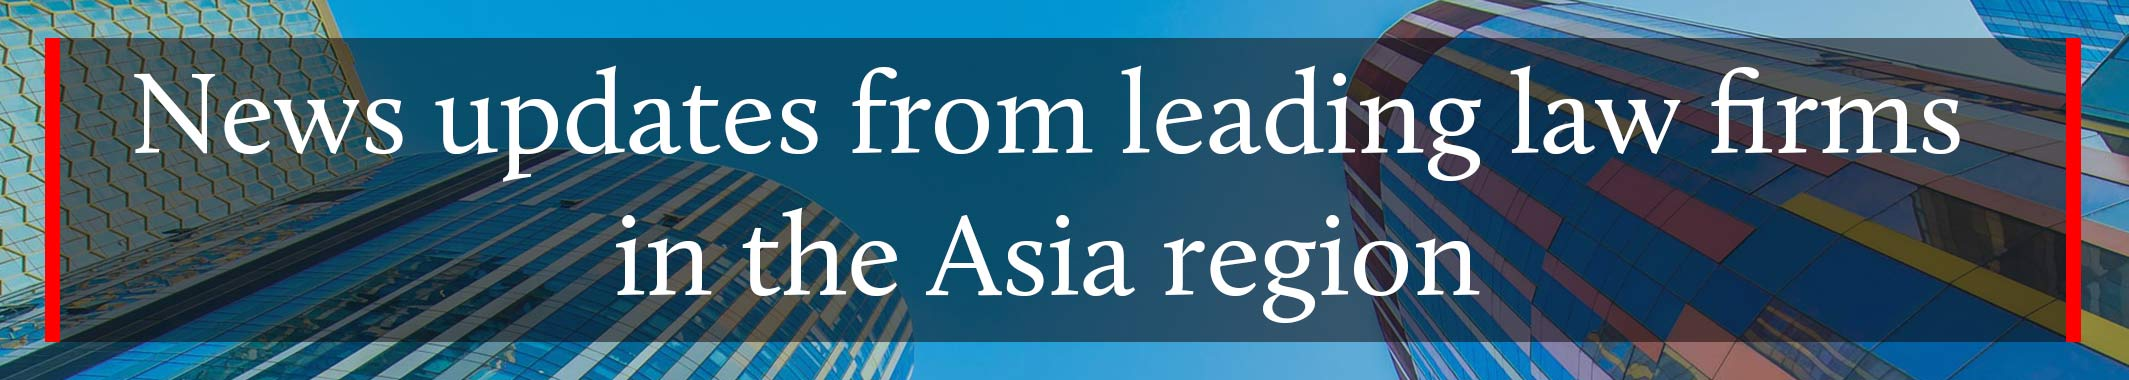 Legal News in Asia Region